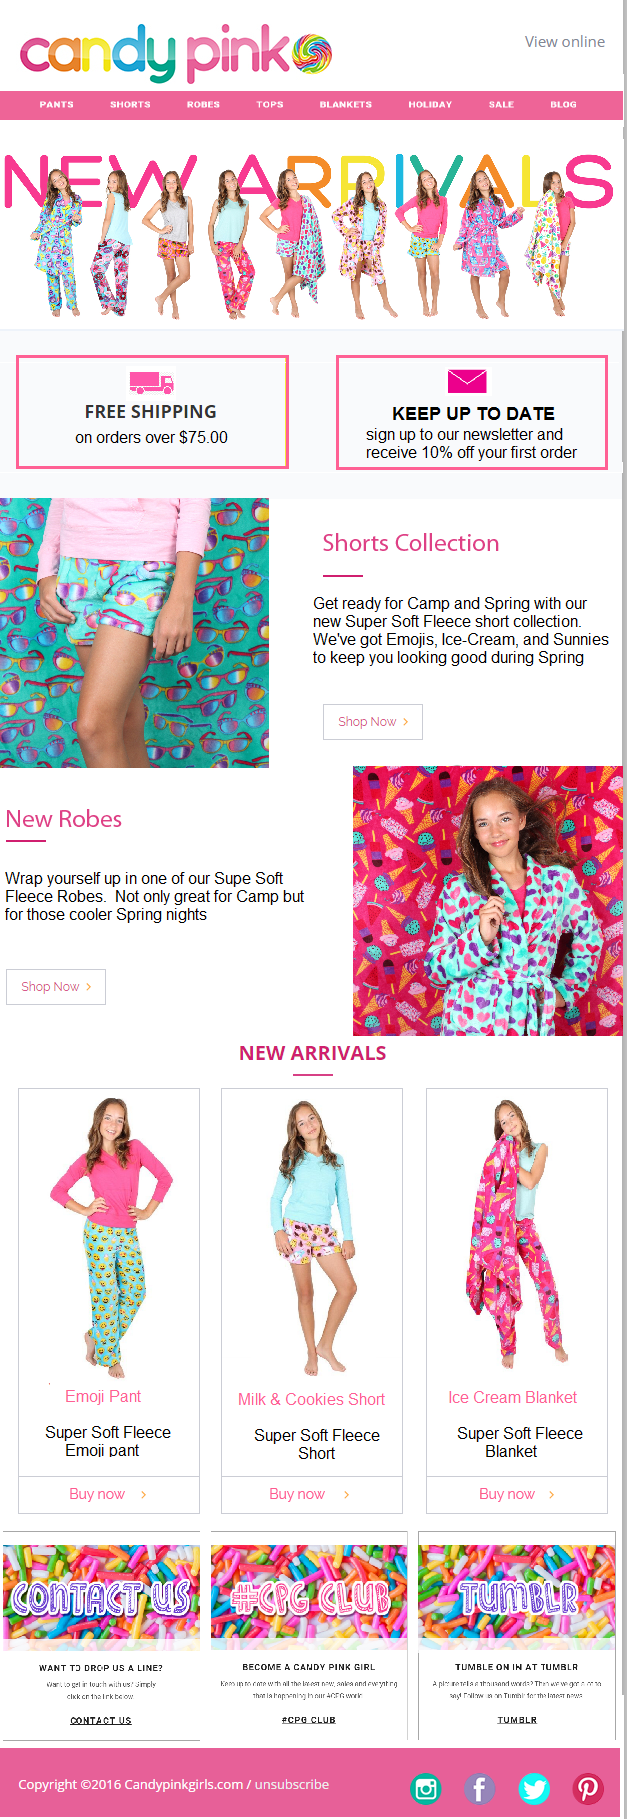 Image of Candy Pink newsletter